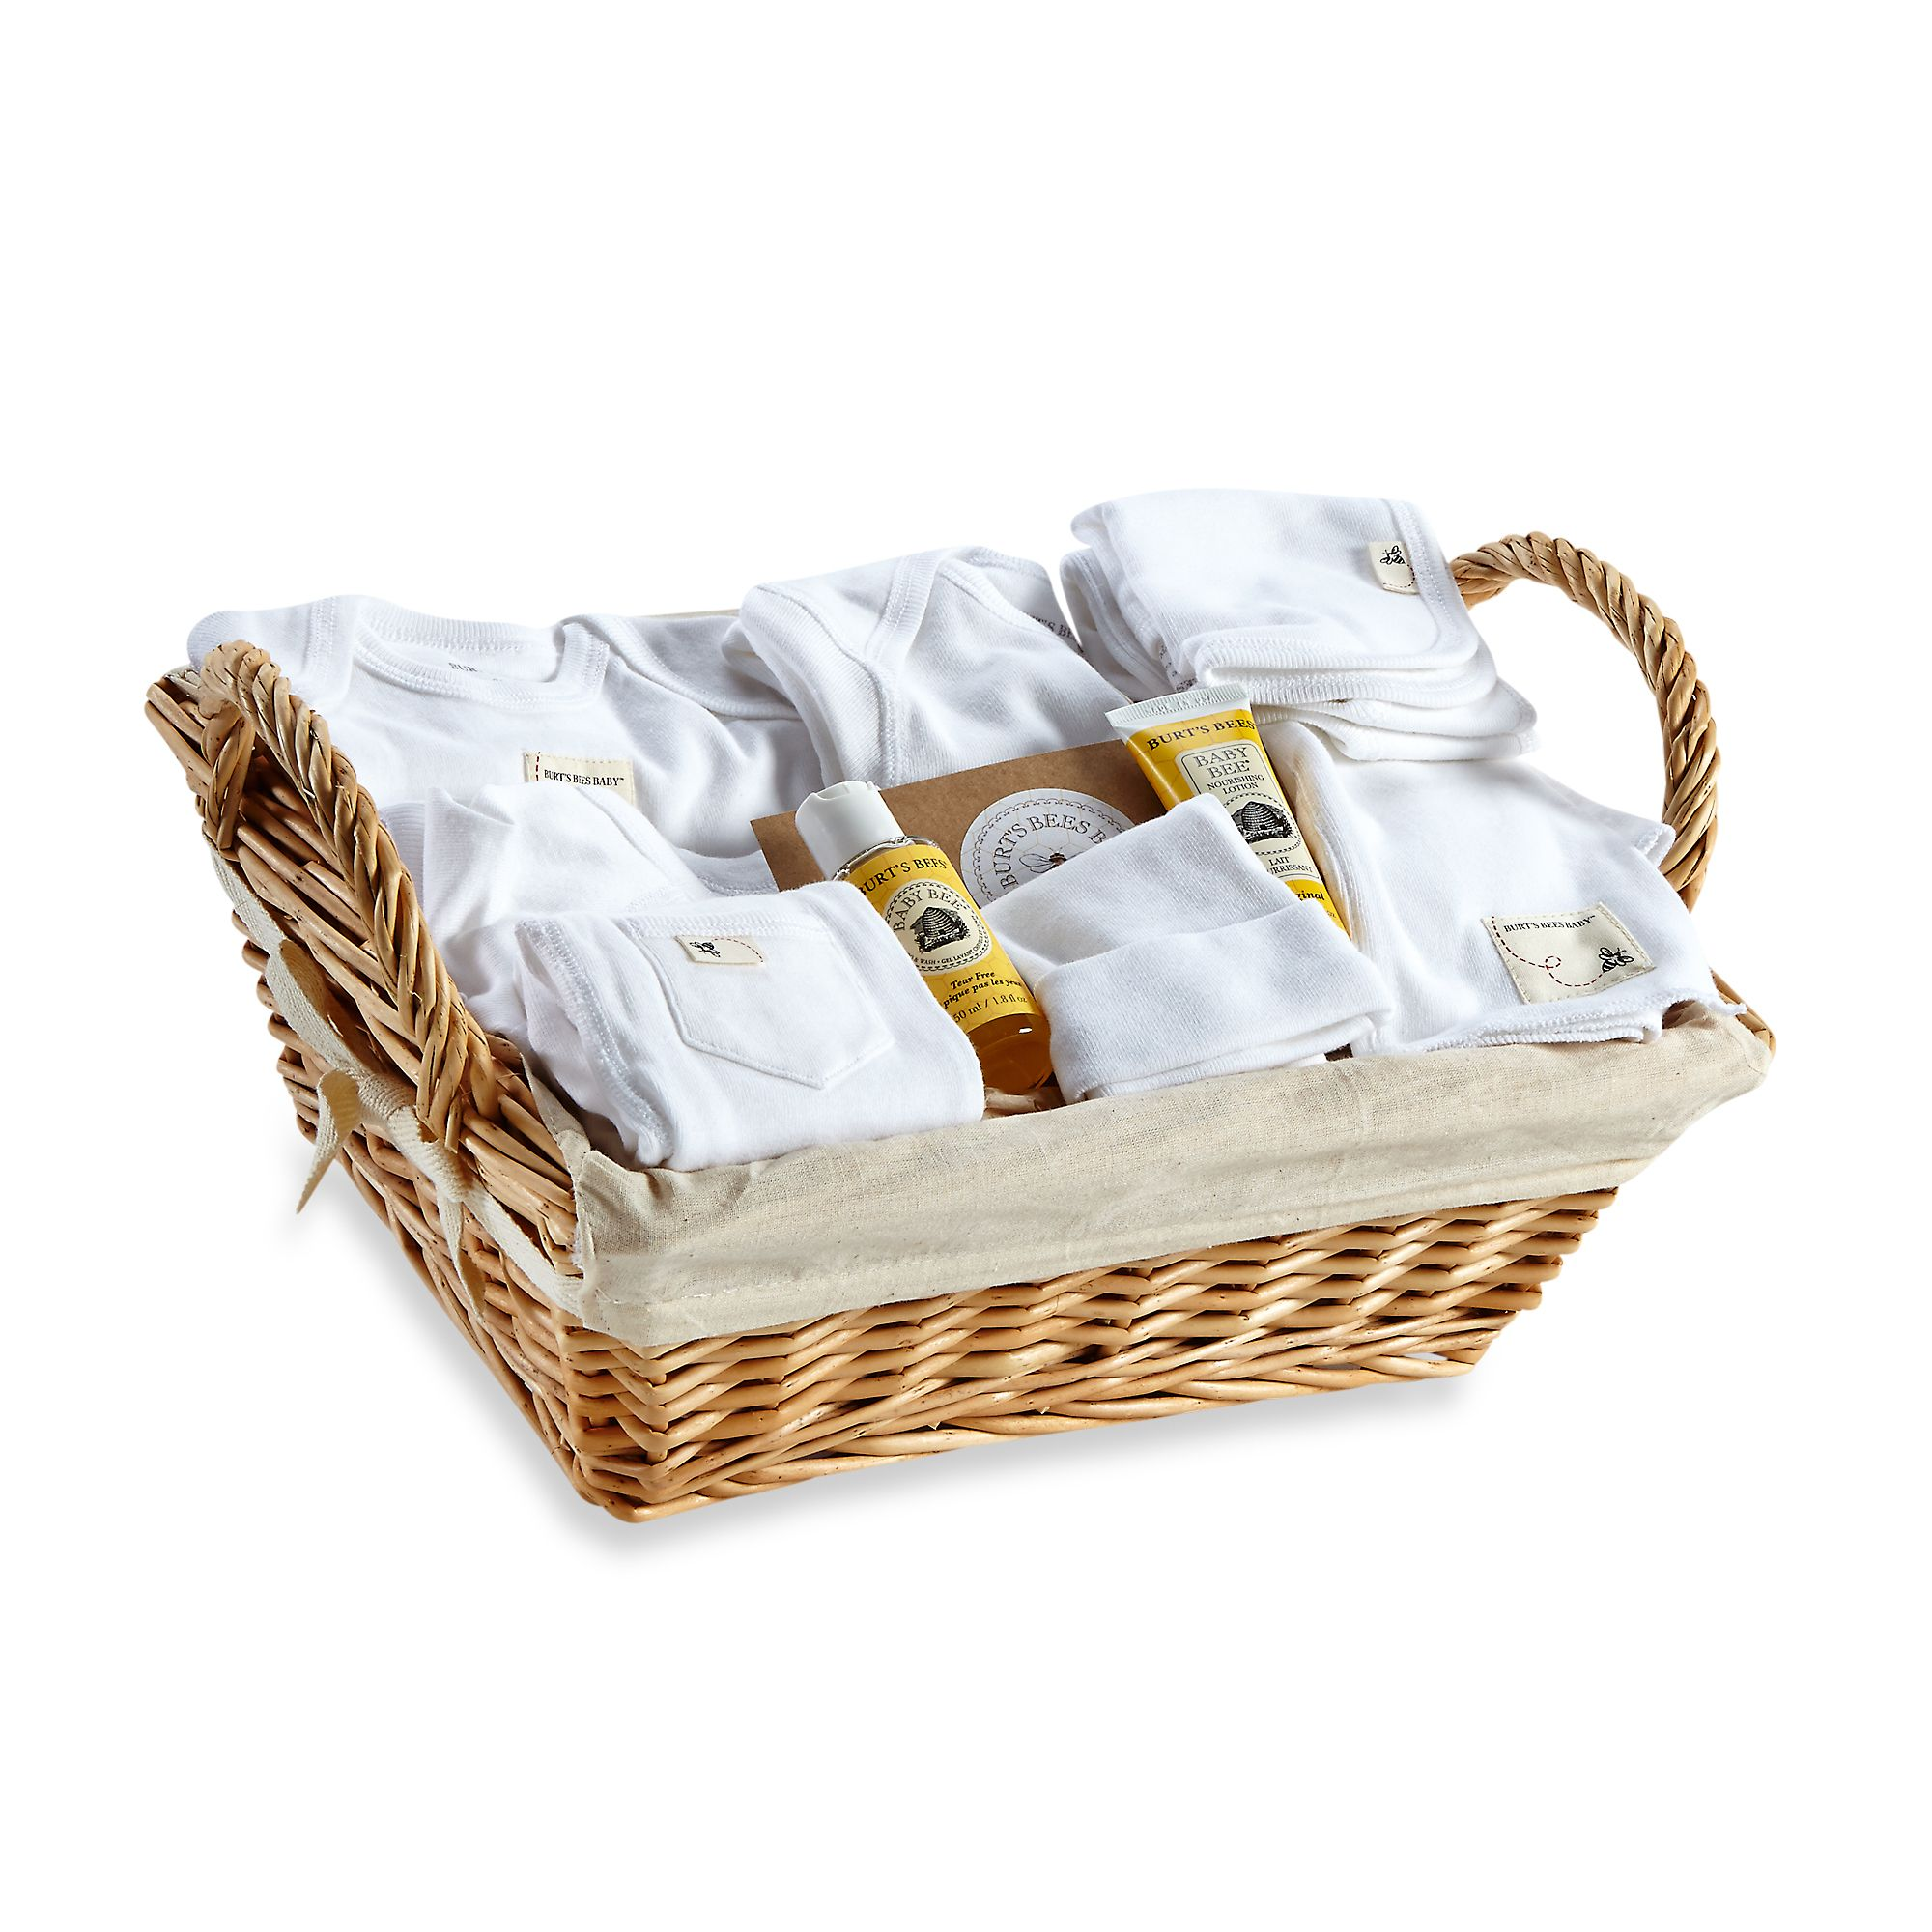 Welcome Home Gift Basket Ideas Home 10-piece Gift Basket